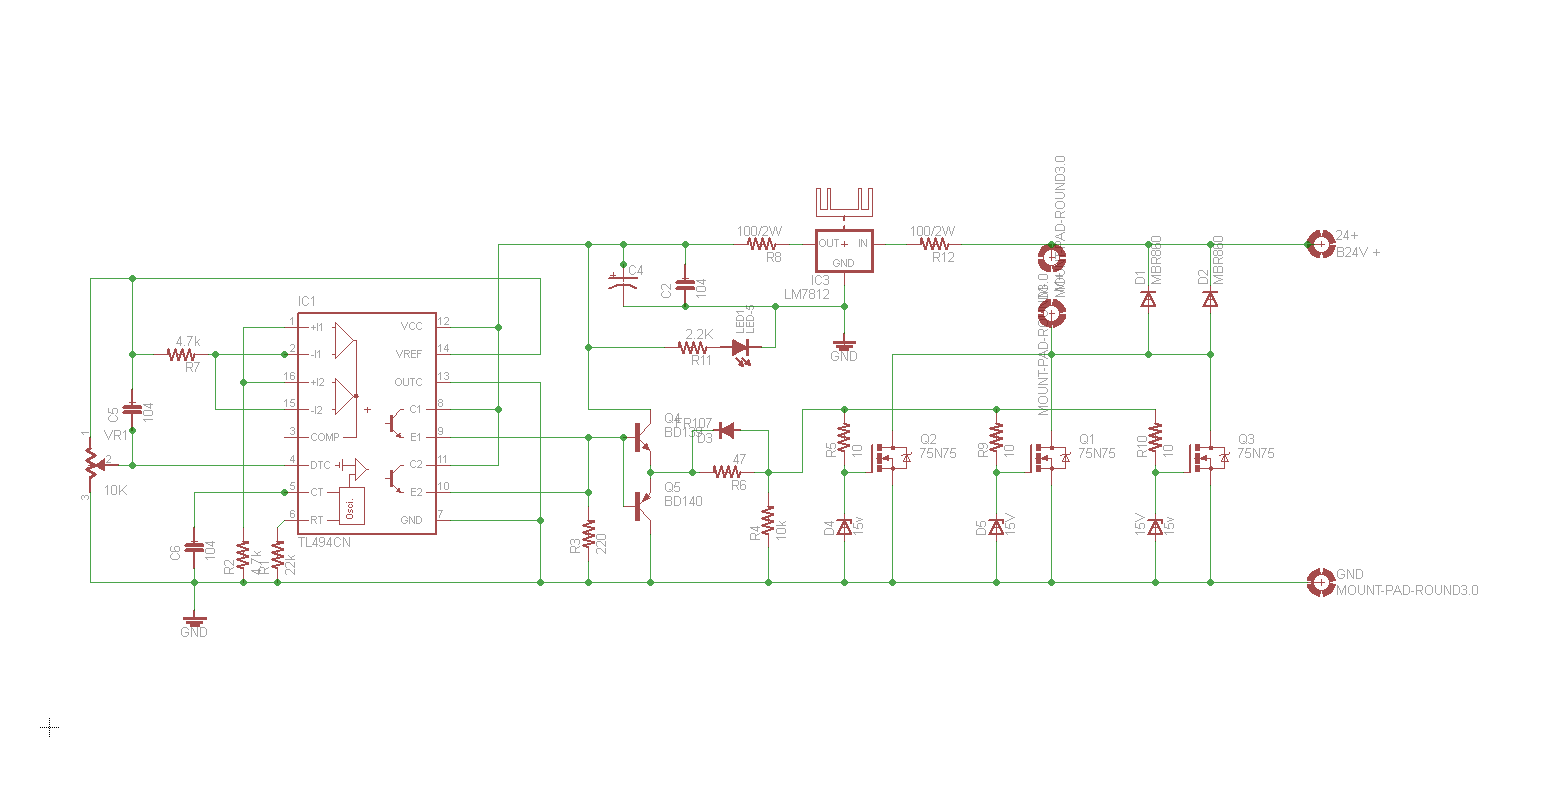 24v 5a Power Supply Circuit Diagram 220v To 15a Psu 750w Dc Motor Speed Control Firts Test 15